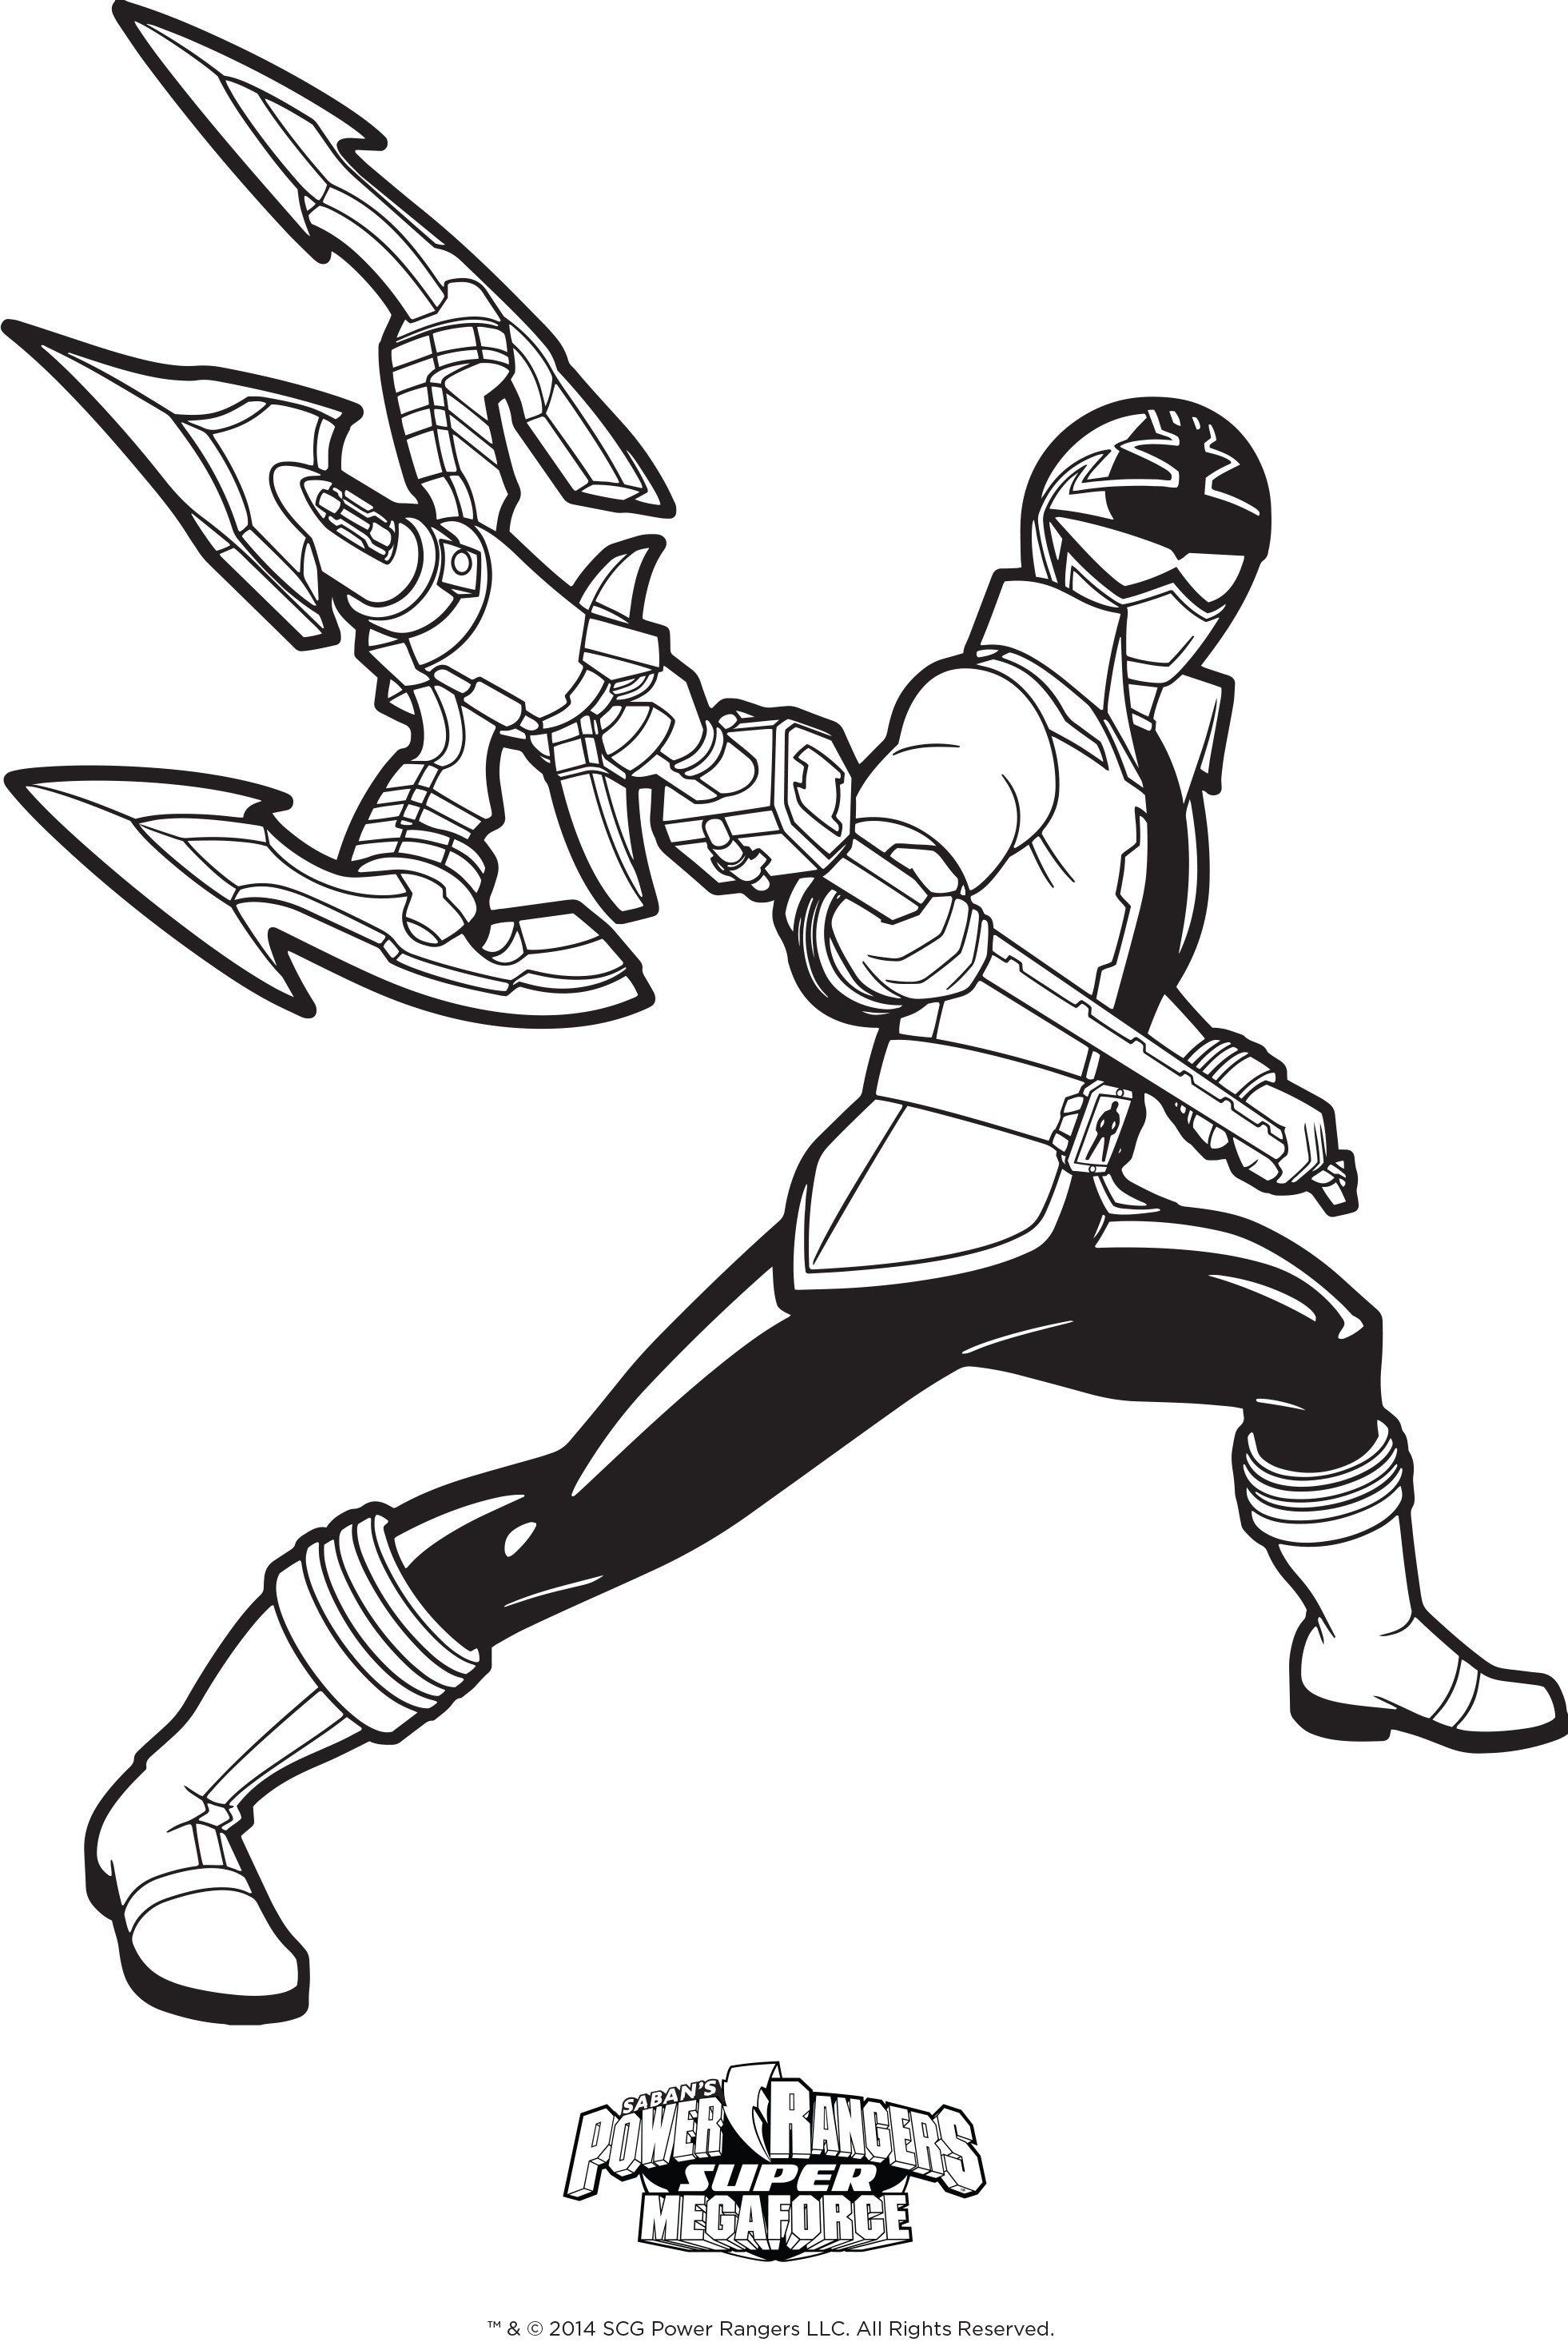 Power Ranger Coloring Pages Elegant Coloring Pages 50 Power Rangers Coloring Book Image In 2020 Power Rangers Coloring Pages Superhero Coloring Pages Coloring Pages